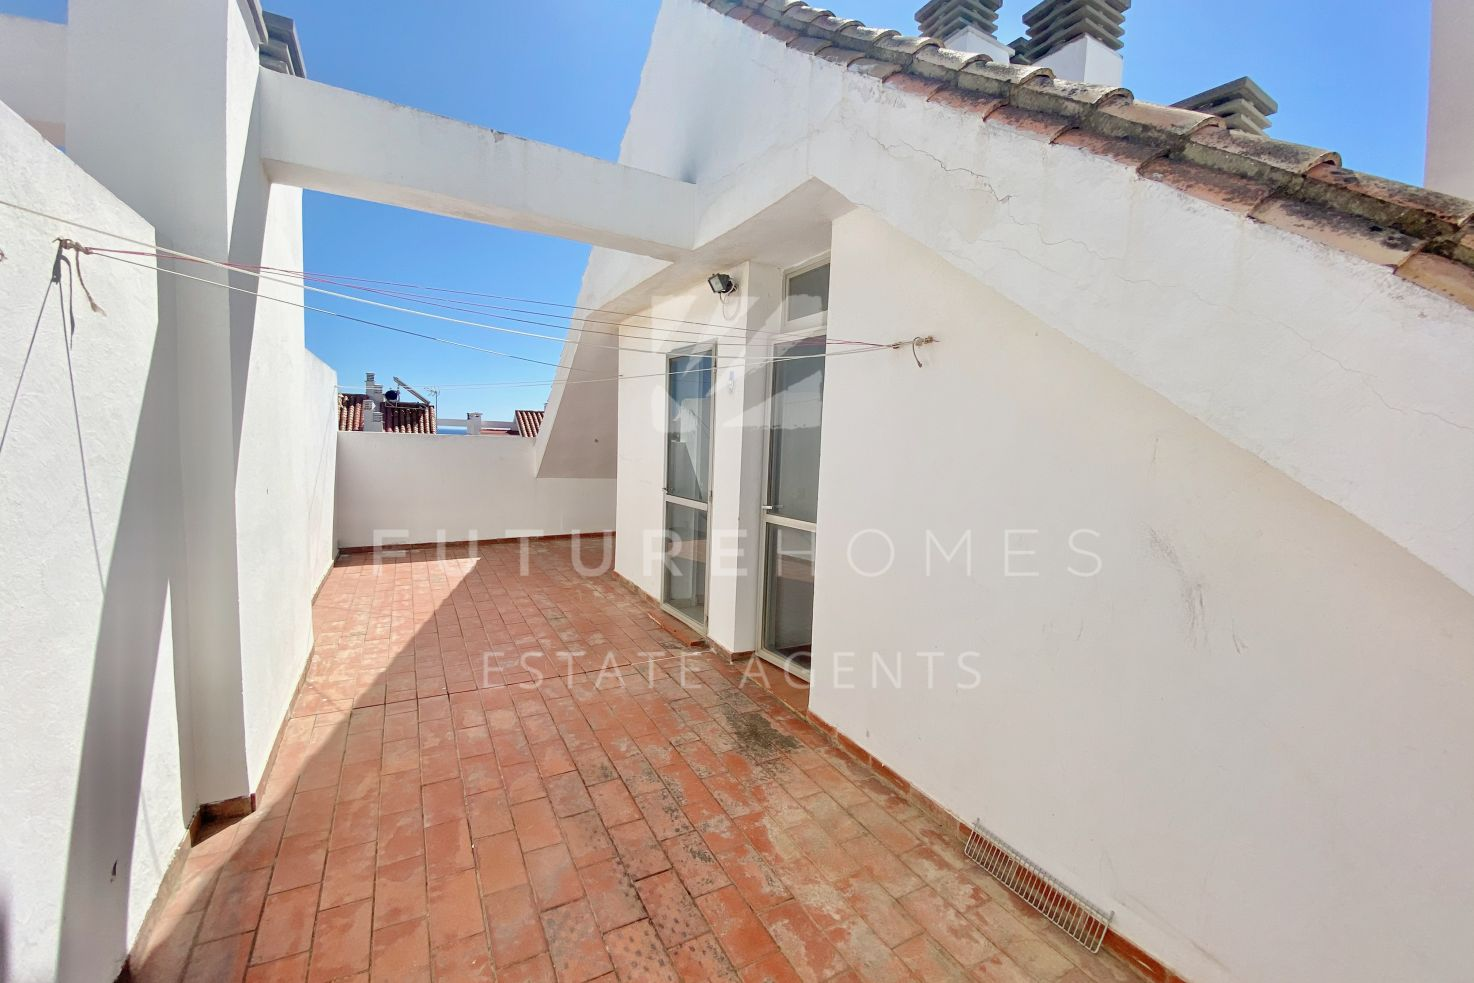 Spacious and bright West facing penthouse duplex in Seghers, Estepona